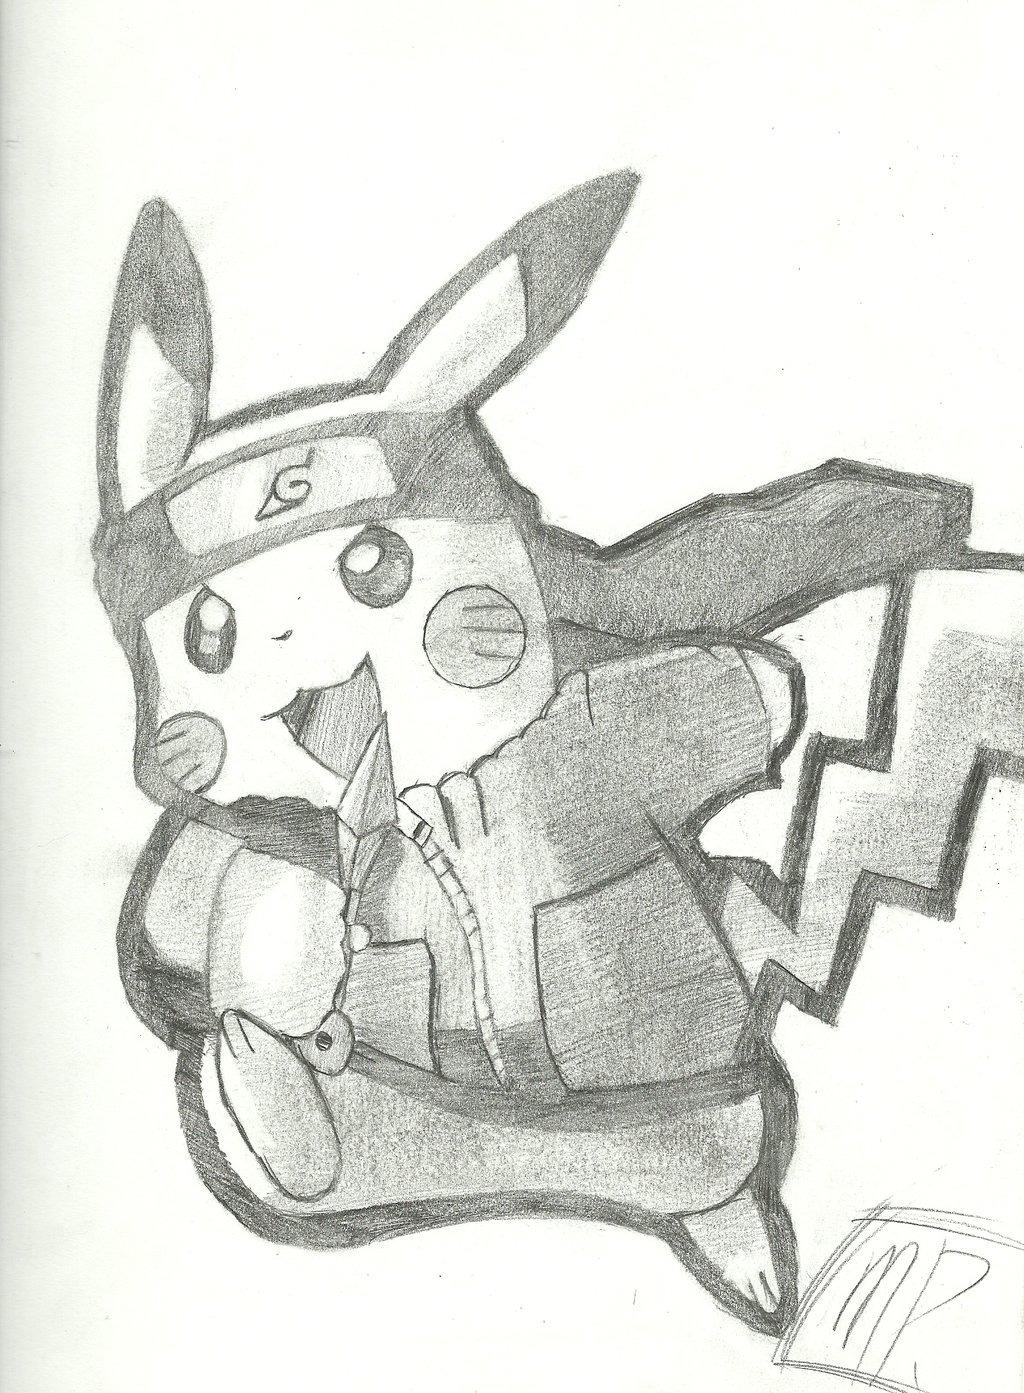 Drawn pikachu shaded Pikachu Skin  Hoodie Minecraft